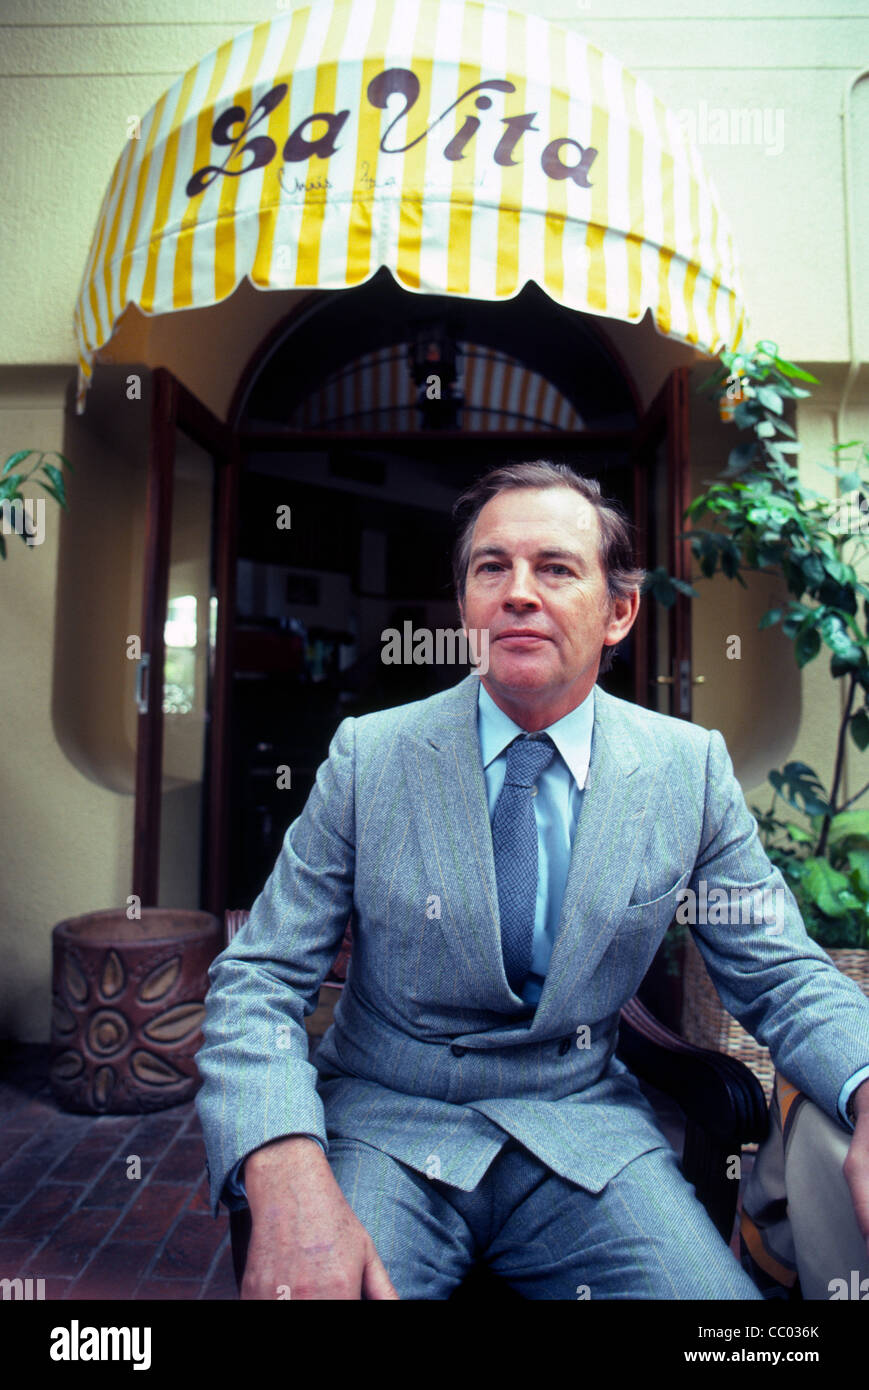 Dr. Christiaan Barnard, famous for doing the first heart transplant, poses at the Italian restaurant he owned later - Stock Image